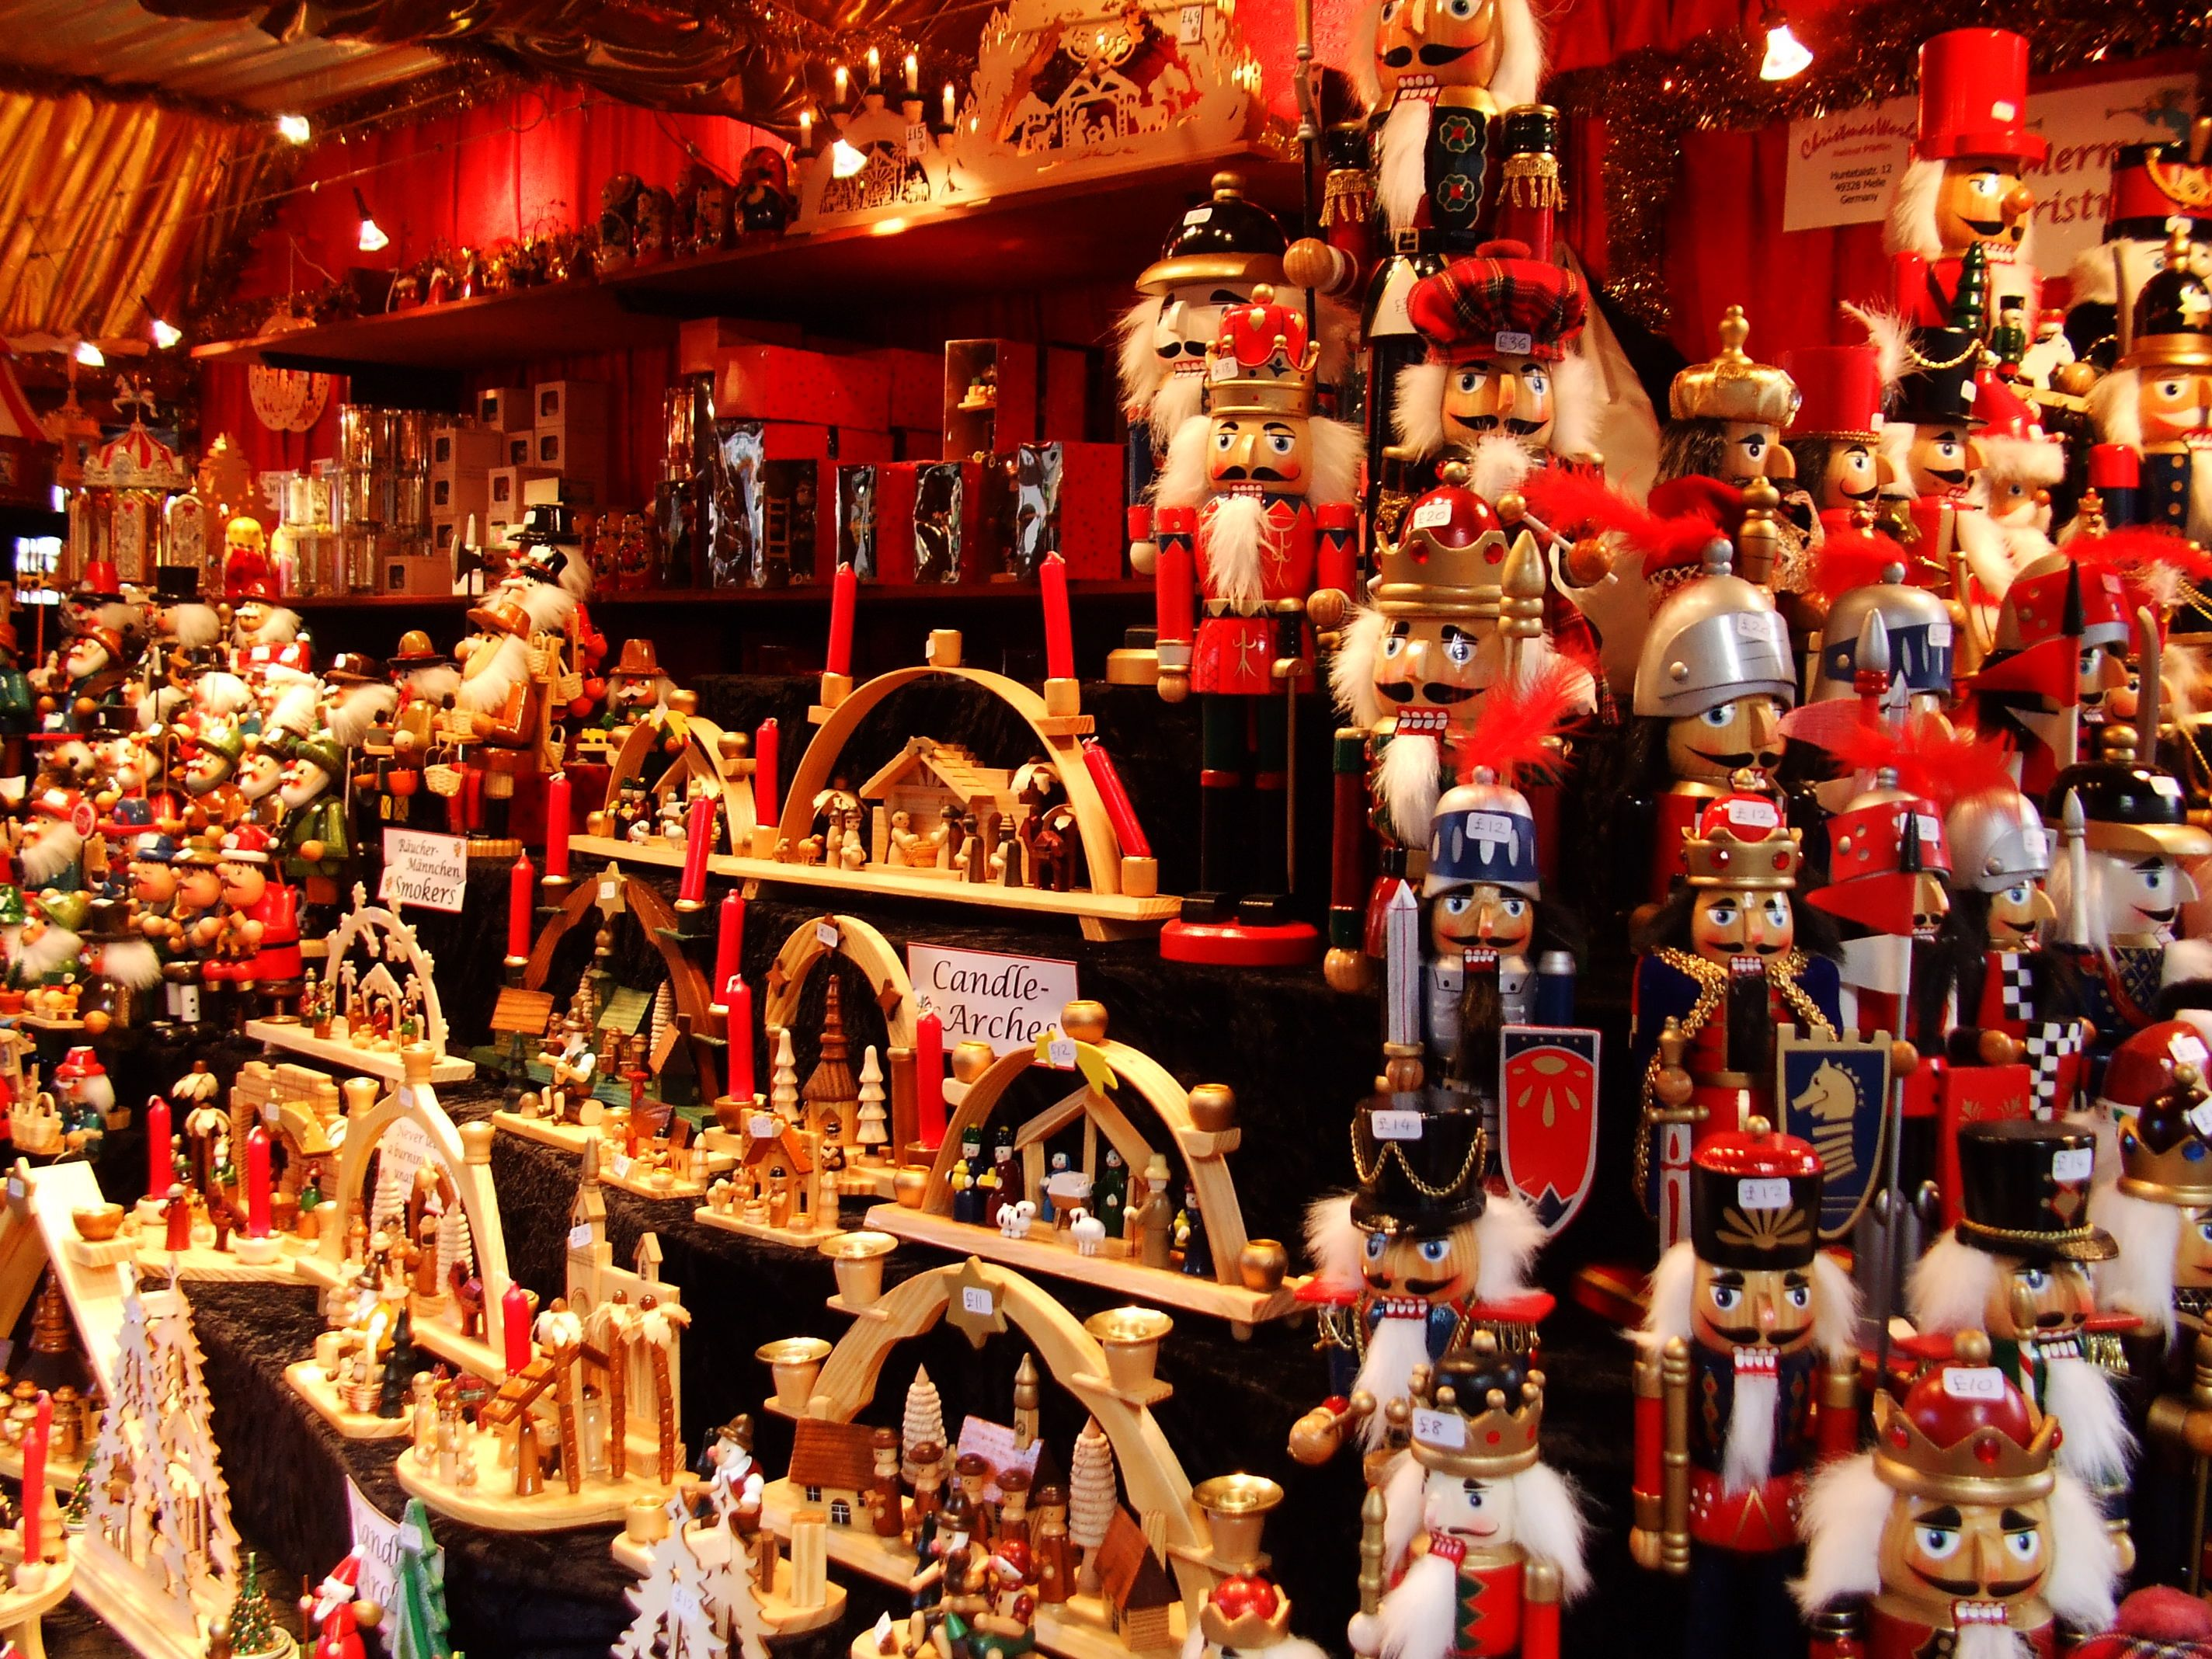 Traditional german christmas decorations - A Booth Of The Handmade Items At The Incredible German Christmas Markets The Christmas